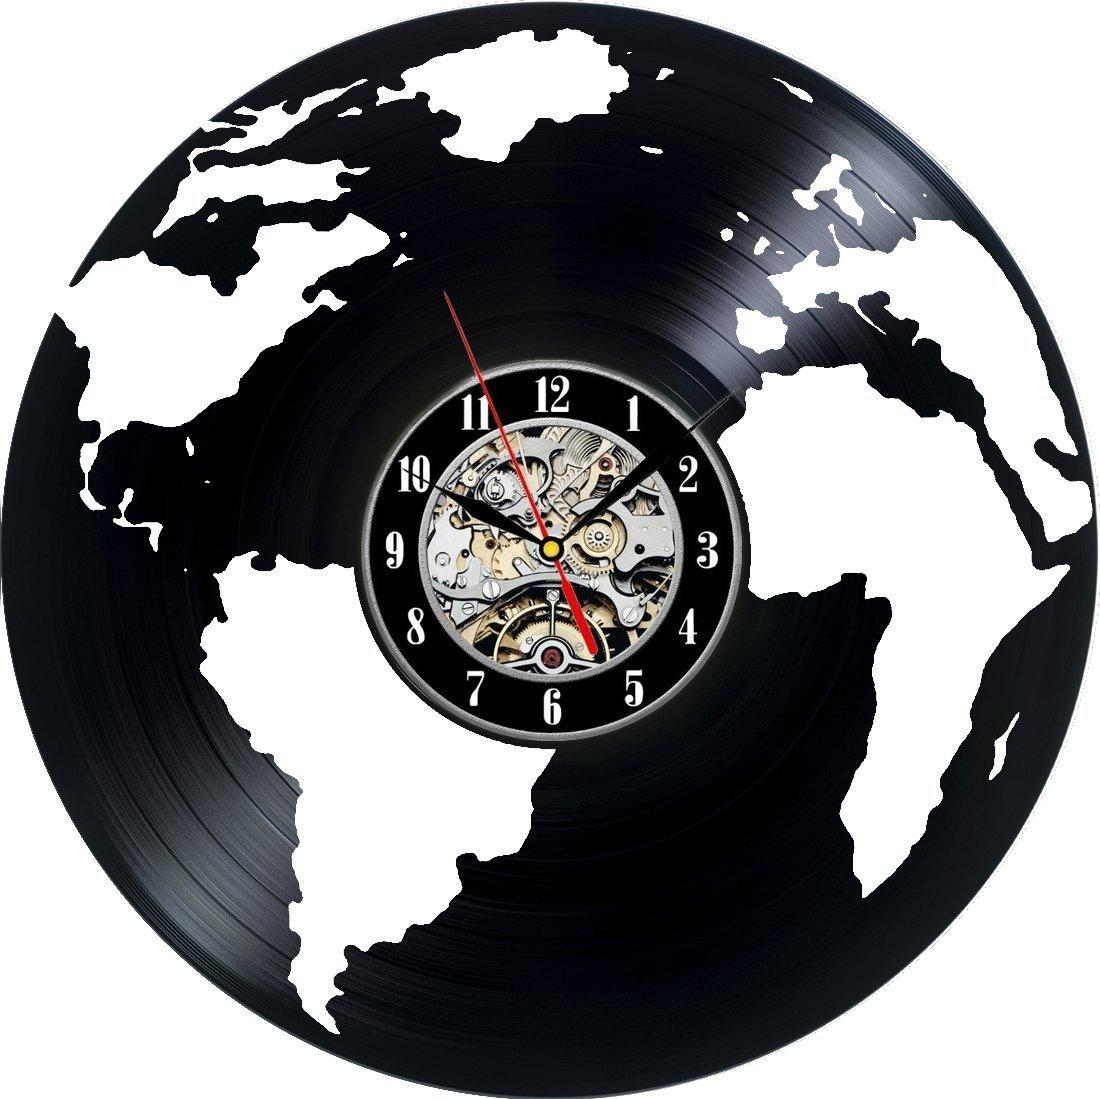 Earth globe map world travel modern decorative vinyl record wall earth globe map world travel modern decorative vinyl record wall clock this clock is a unique gift to your friends and family digital wall clock online gumiabroncs Images